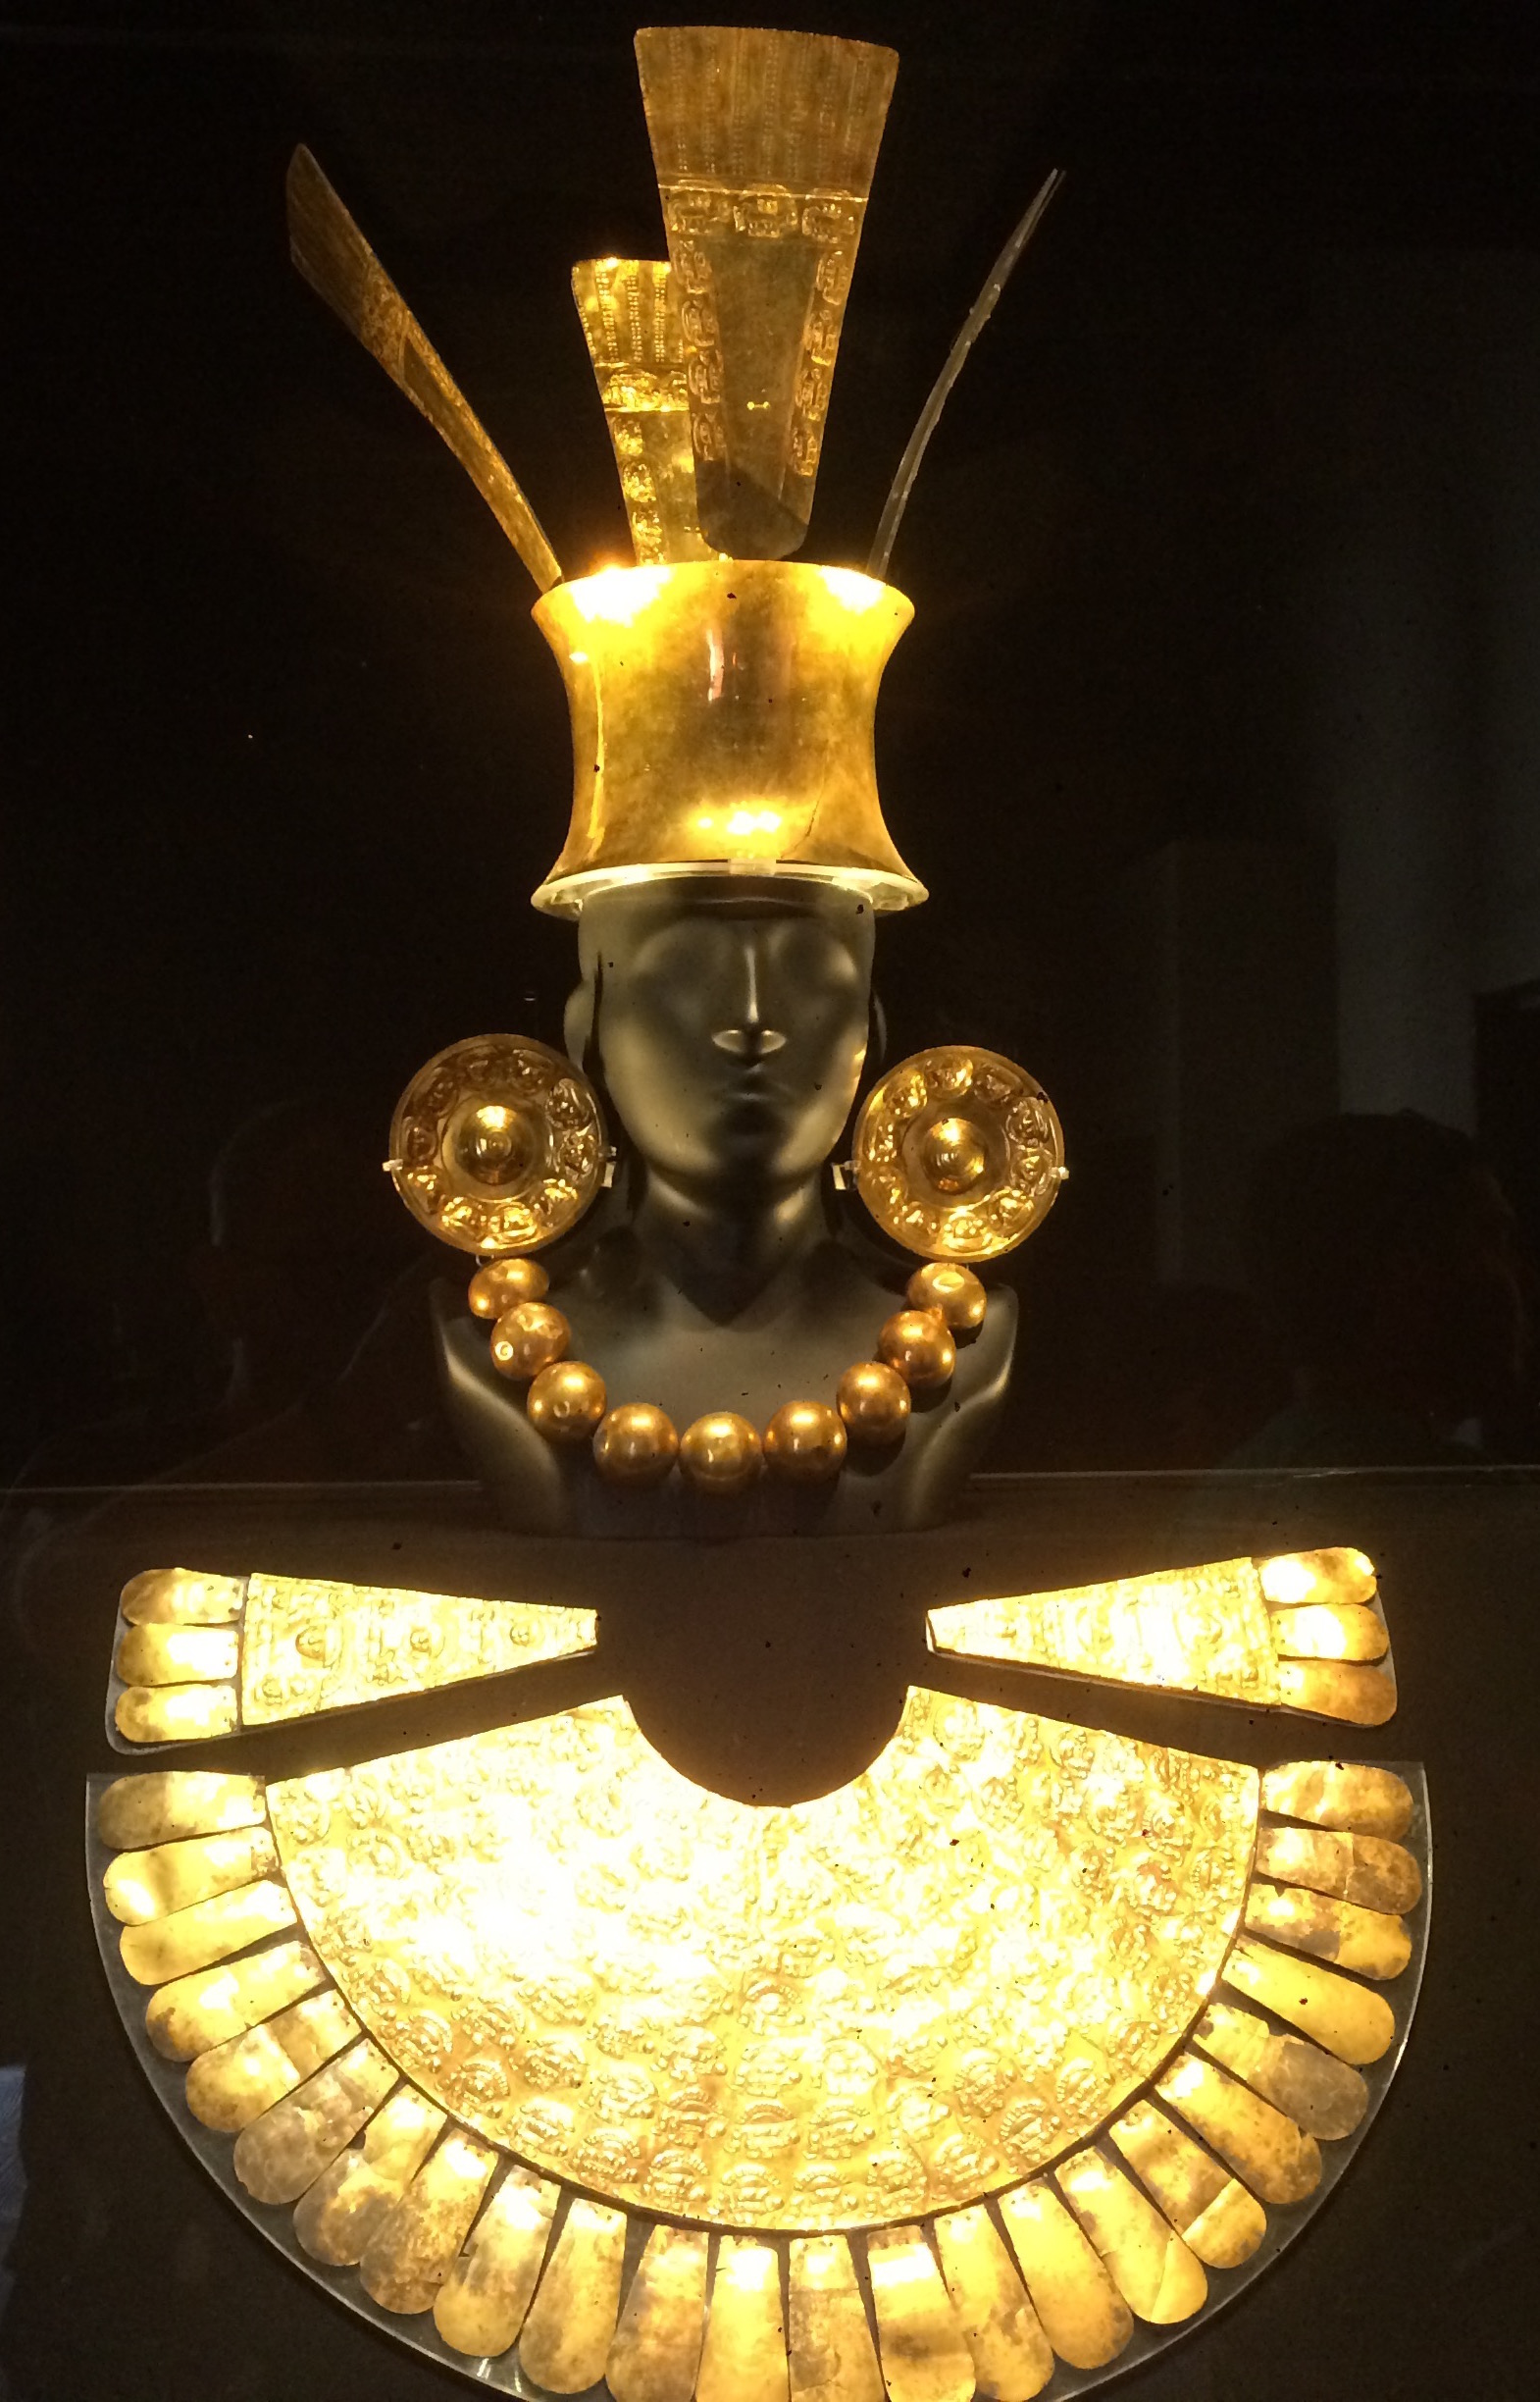 By far the most visually impressive piece is this gold funerary offering from the Chimu culture.